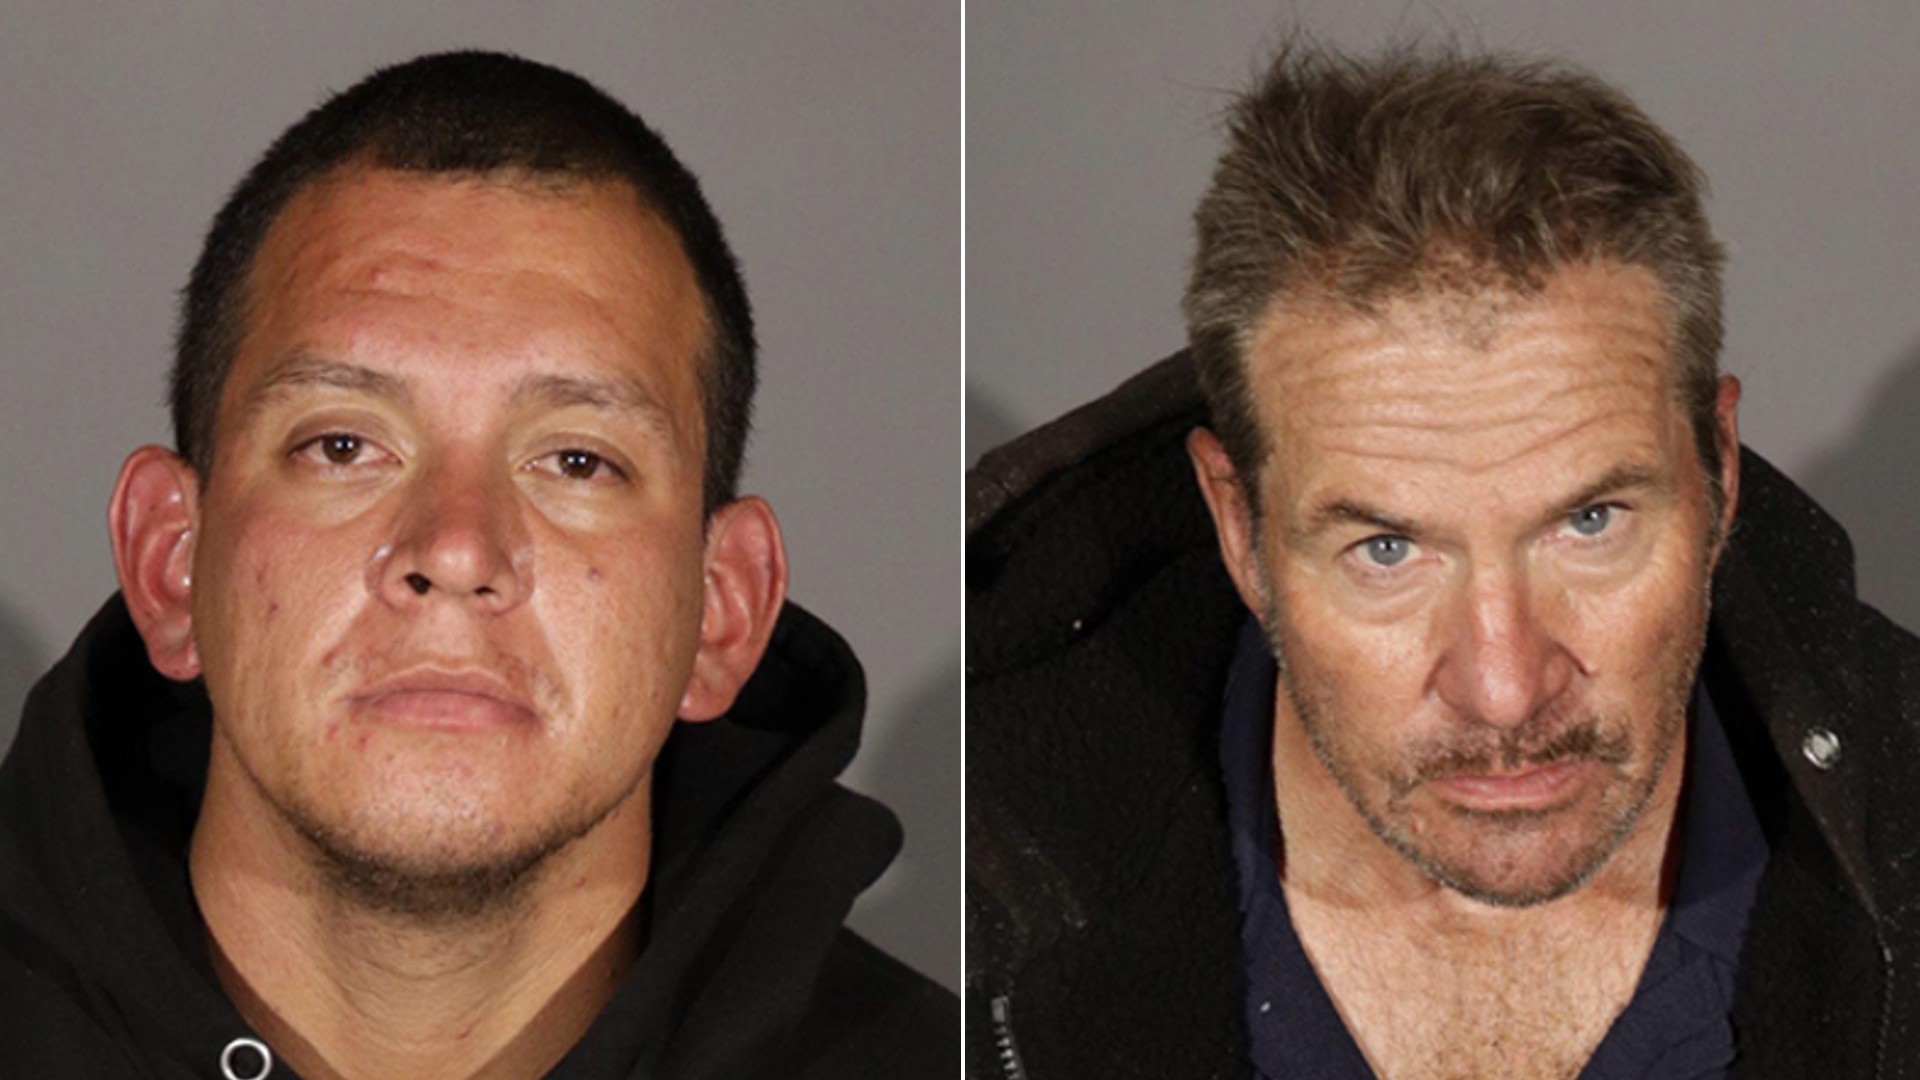 28-year-old Cesar Medina-Sanchez and 62-year-old Craig Murphy are seen in a photo shared by the Glendale Police Department on Oct. 19, 2021.